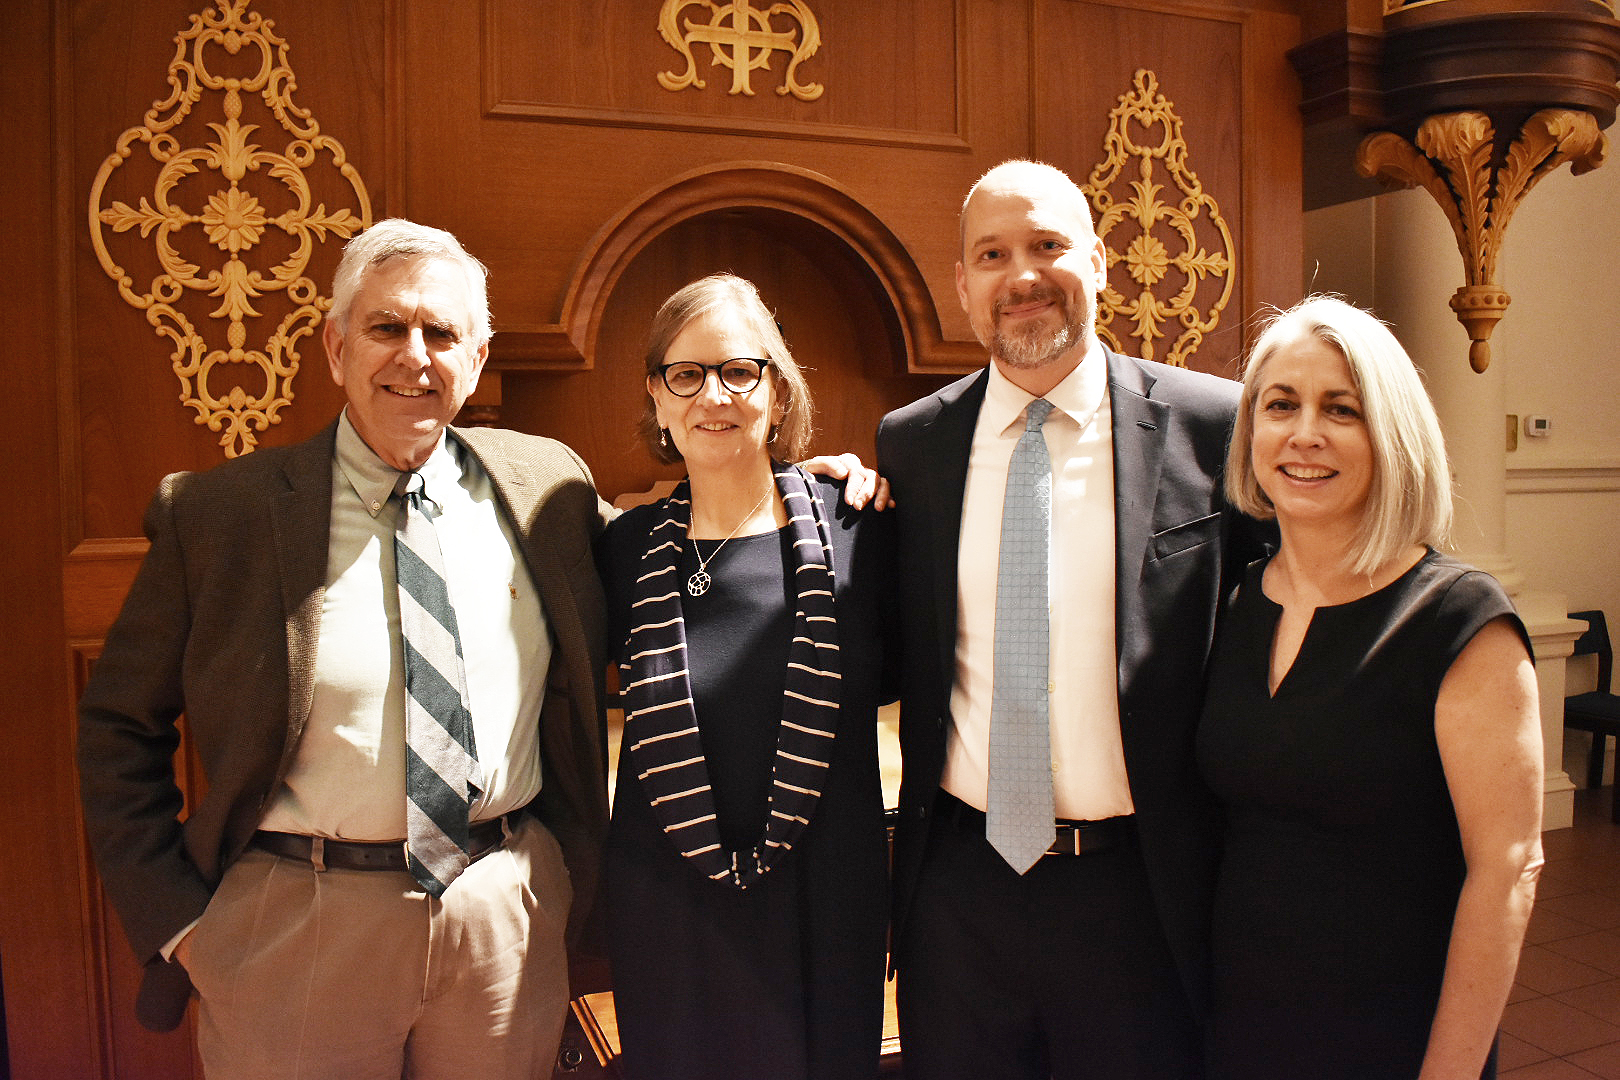 CLMP Board Co-chair Gerald Howard, Graywolf publisher Fiona McCrae, Poets & Writers Editor-in-Chief Kevin Larimer, and CLMP Executive Director Mary Gannon